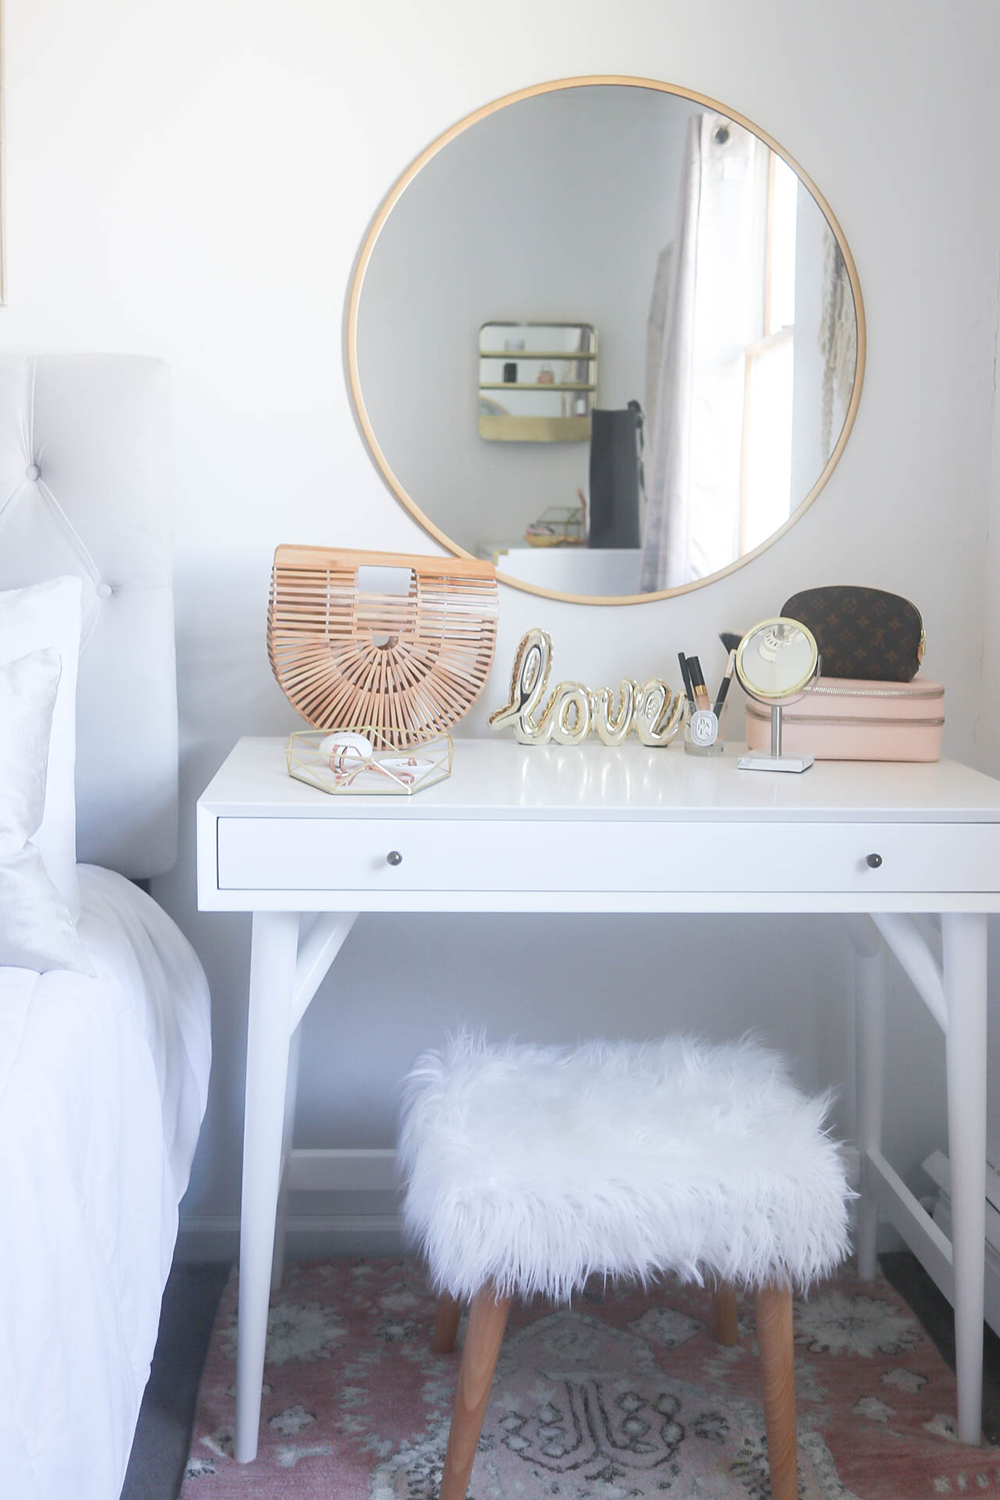 Styling A Vanity In A Small Space Gold Home Decor Home Decor